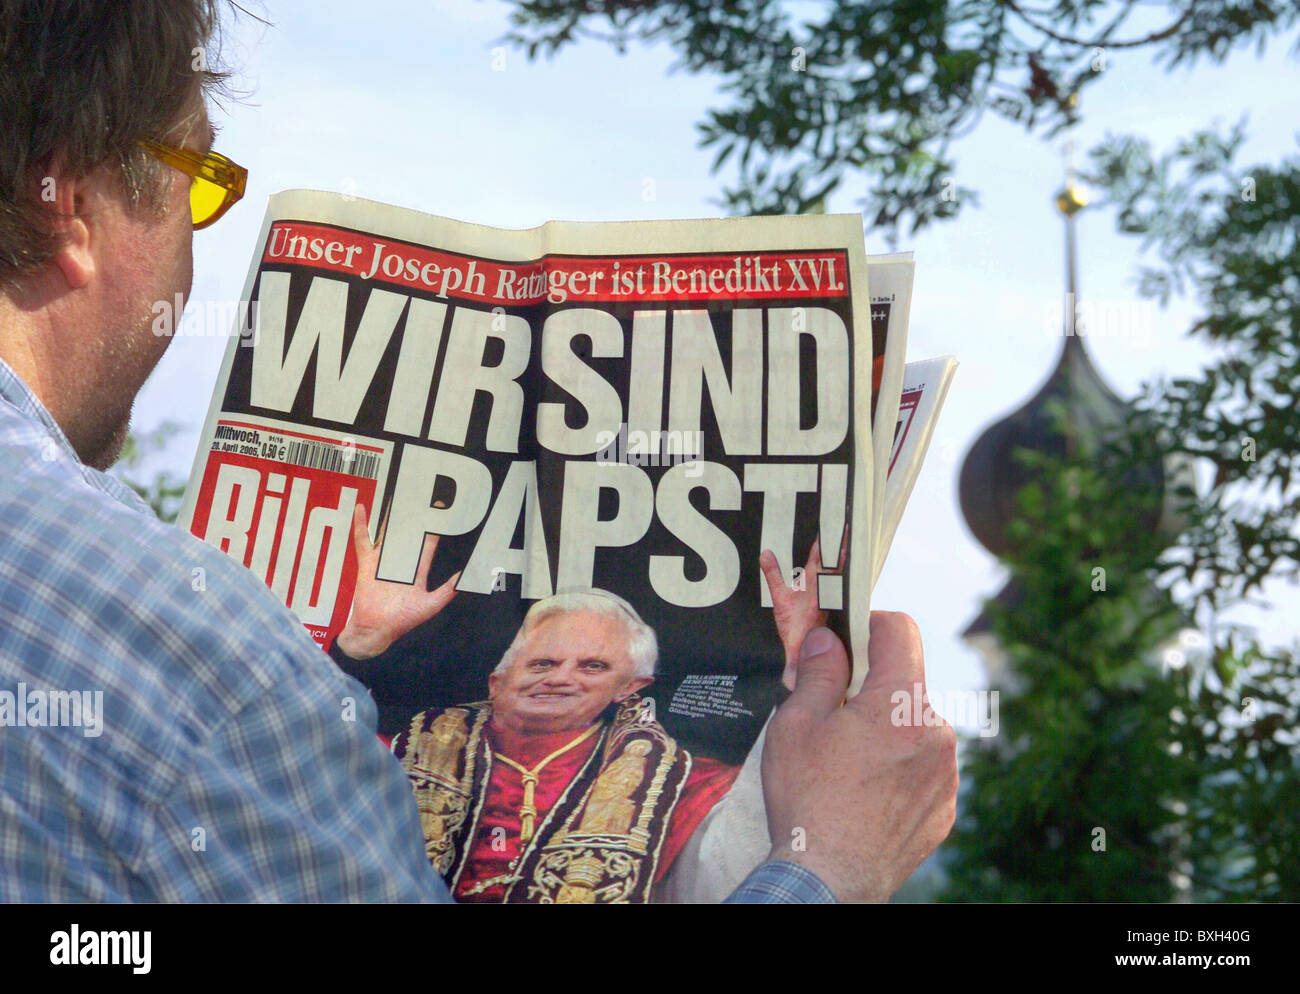 press, printed medium, BILD newspaper, famous headline: 'Wir sind Papst' (We are pope), Germany, 20.04.2005, - Stock Image